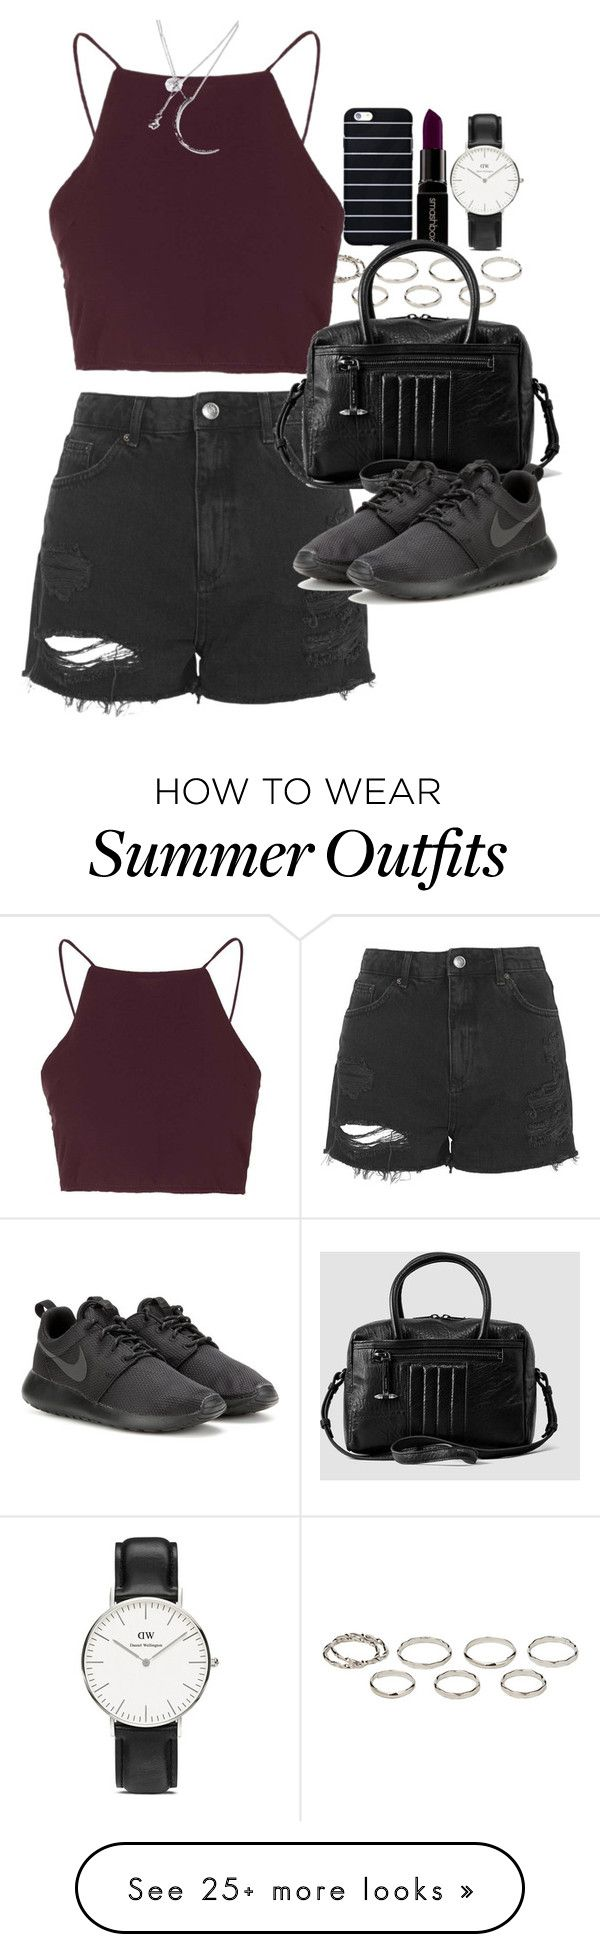 """""""Outfit for summer with shorts"""" by ferned on Polyvore featuring Smashbox, Akira, Topshop, AllSaints, NIKE, Daniel Wellington and Forever 21"""